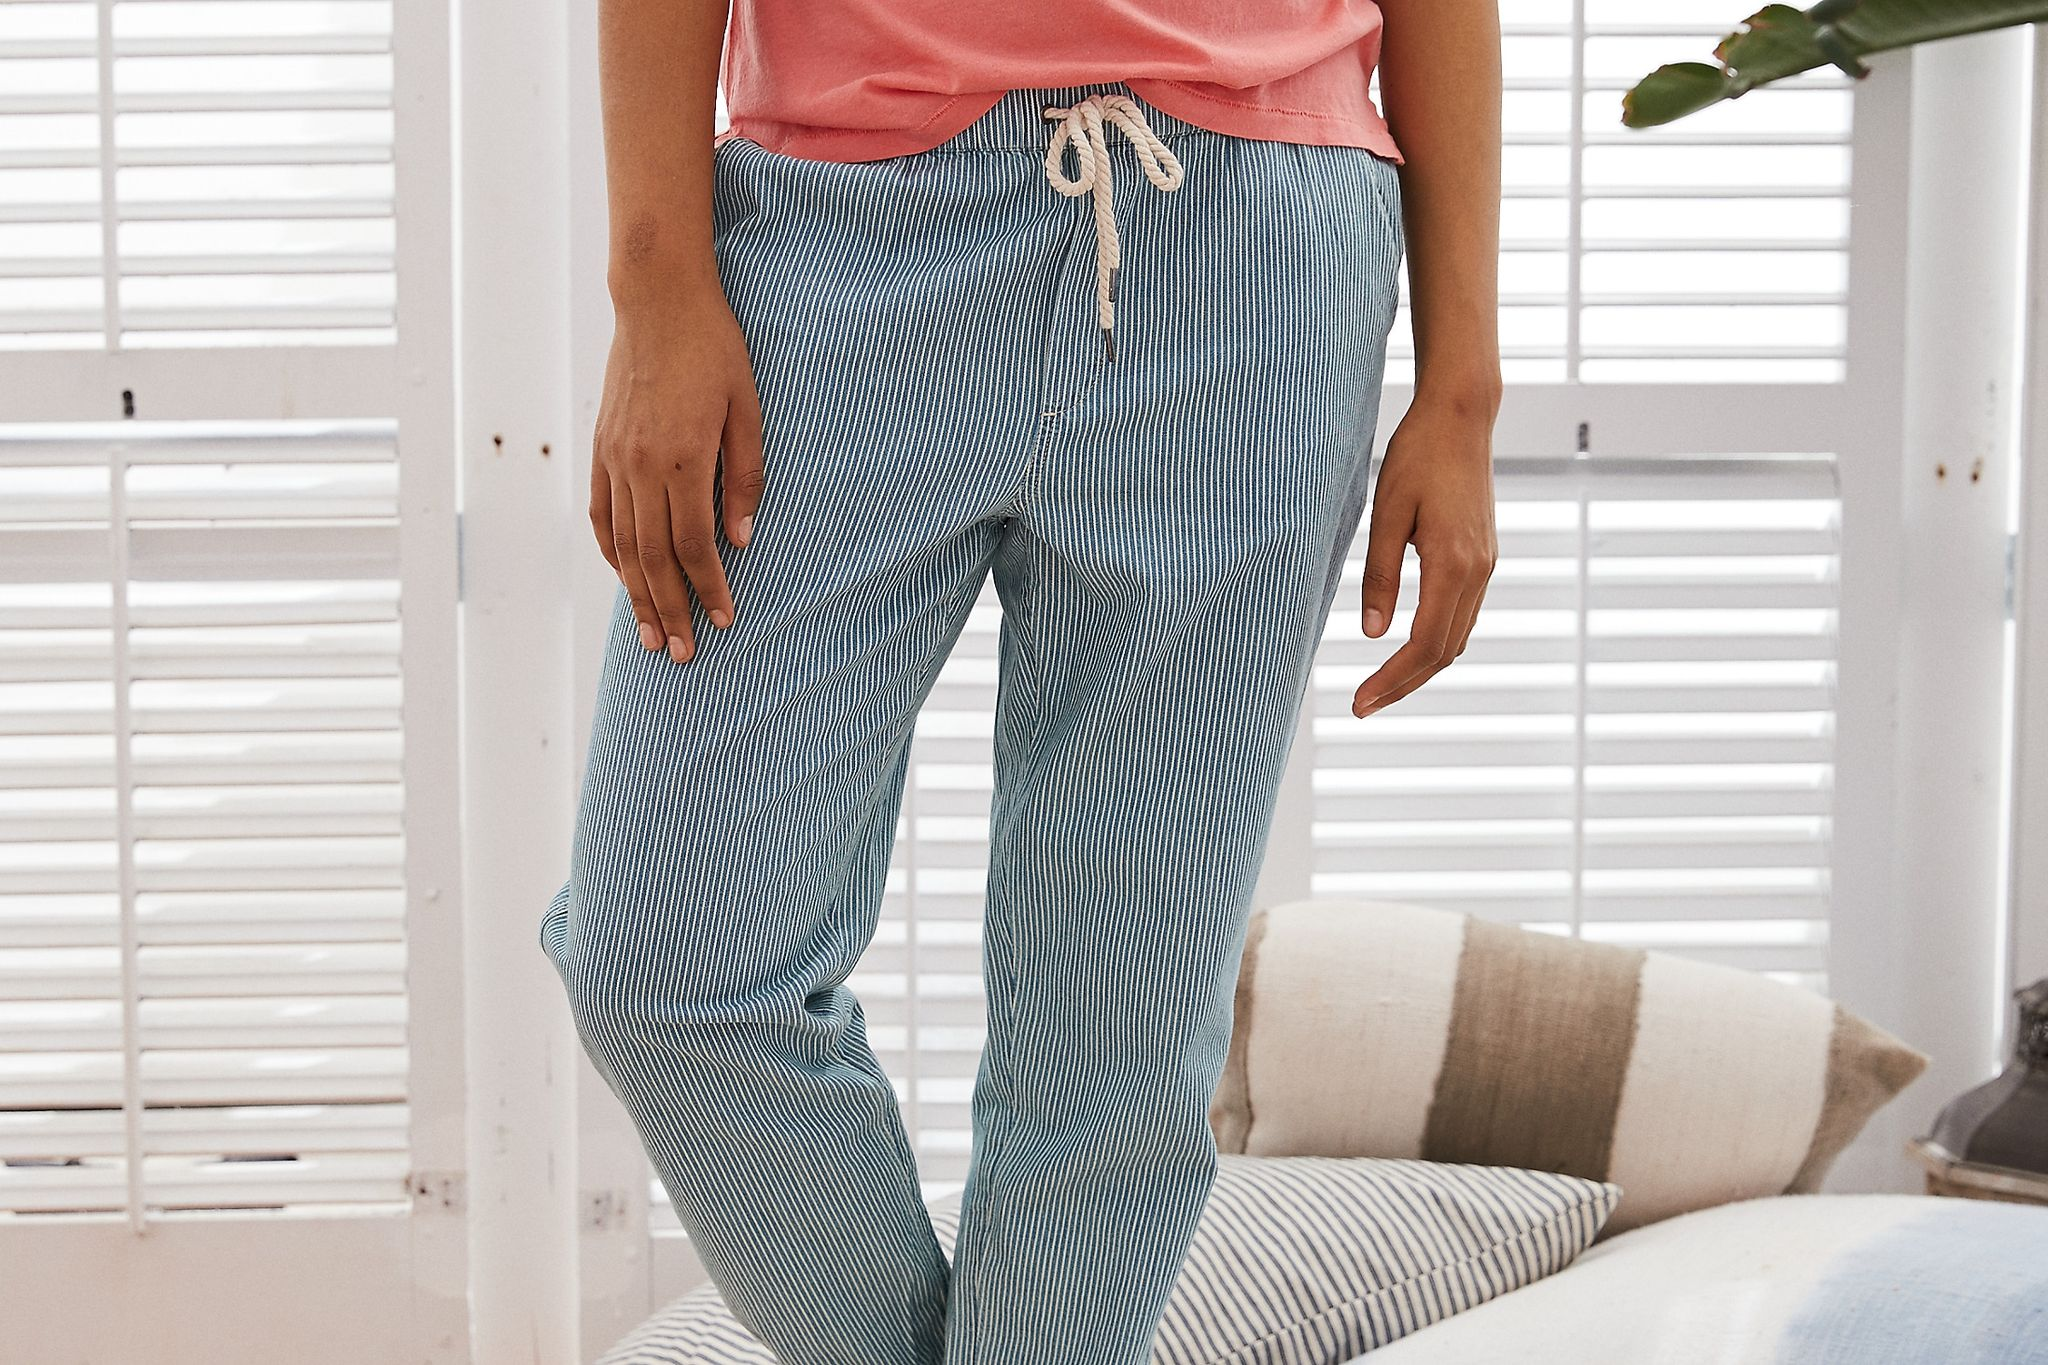 American Eagle Aerie Chambray Jogger Price In Egypt Jumia Pants